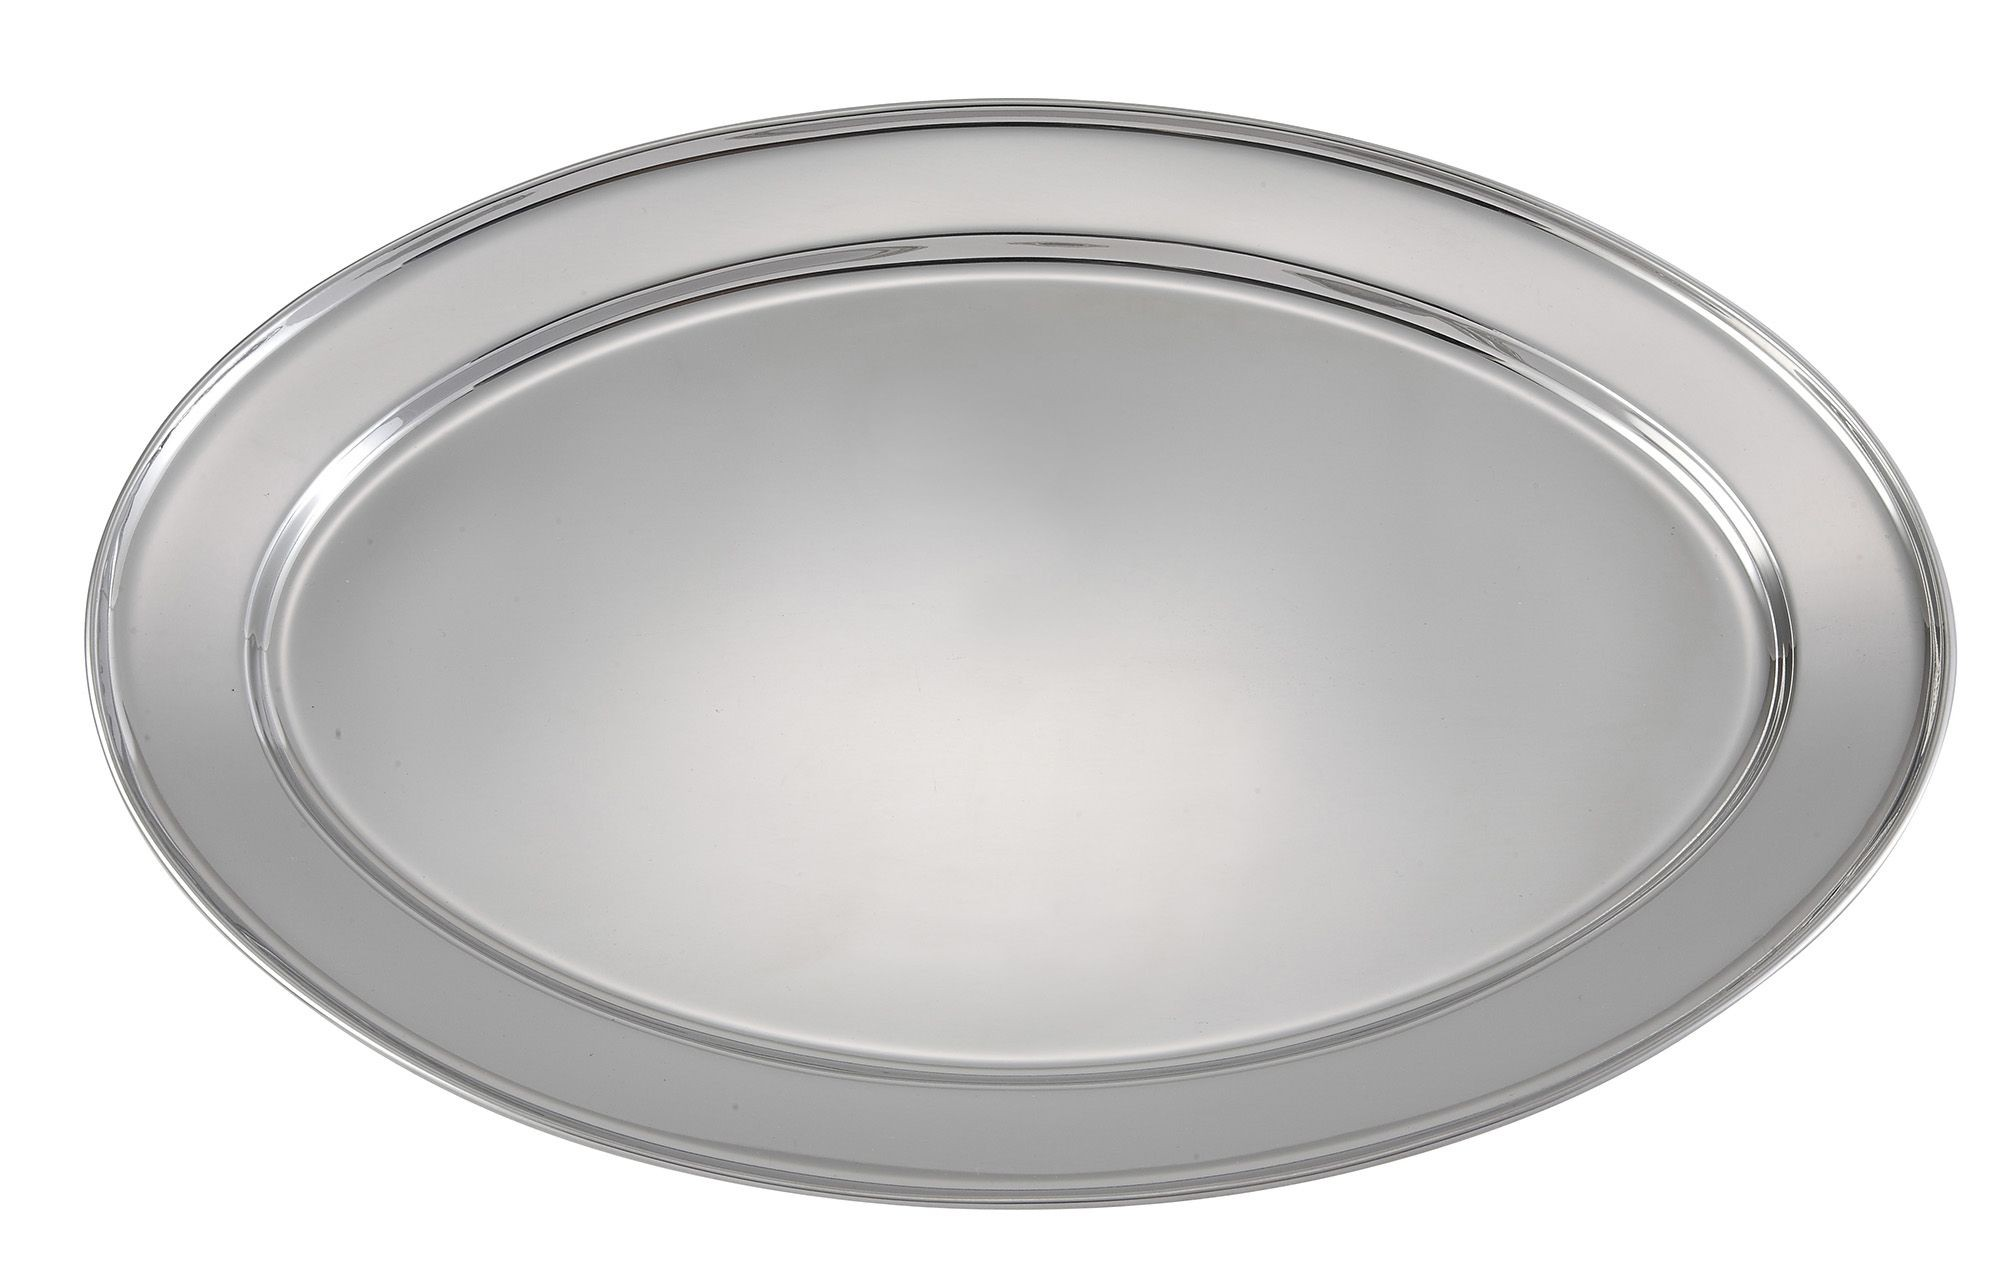 "Winco OPL-18 Stainless Steel Oval Platter, 18"" x 11-1/2"""